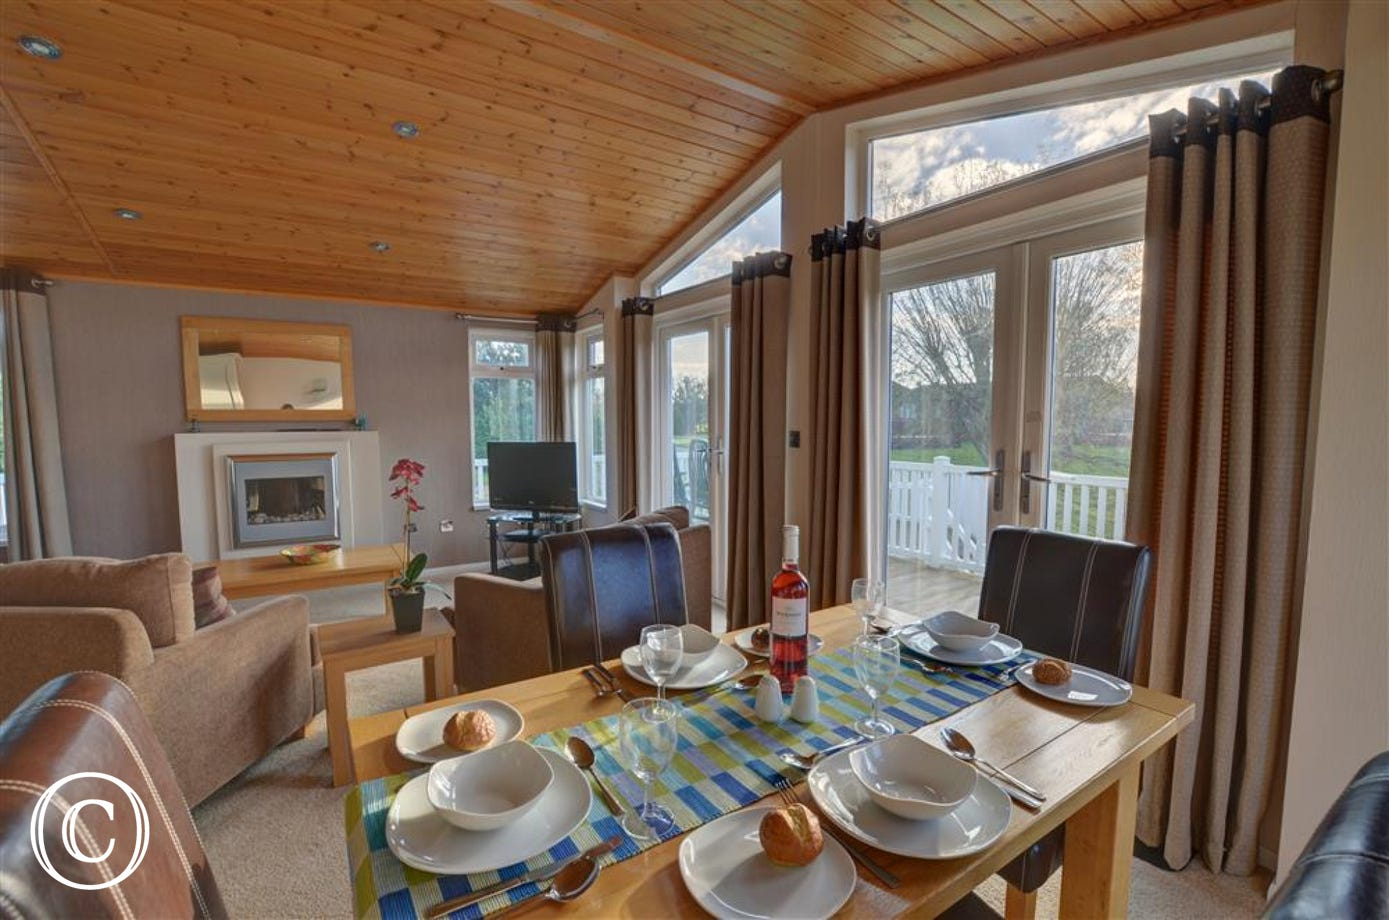 Gather at this dining table for 4 which has views over the decking area at the property and out over the lake.